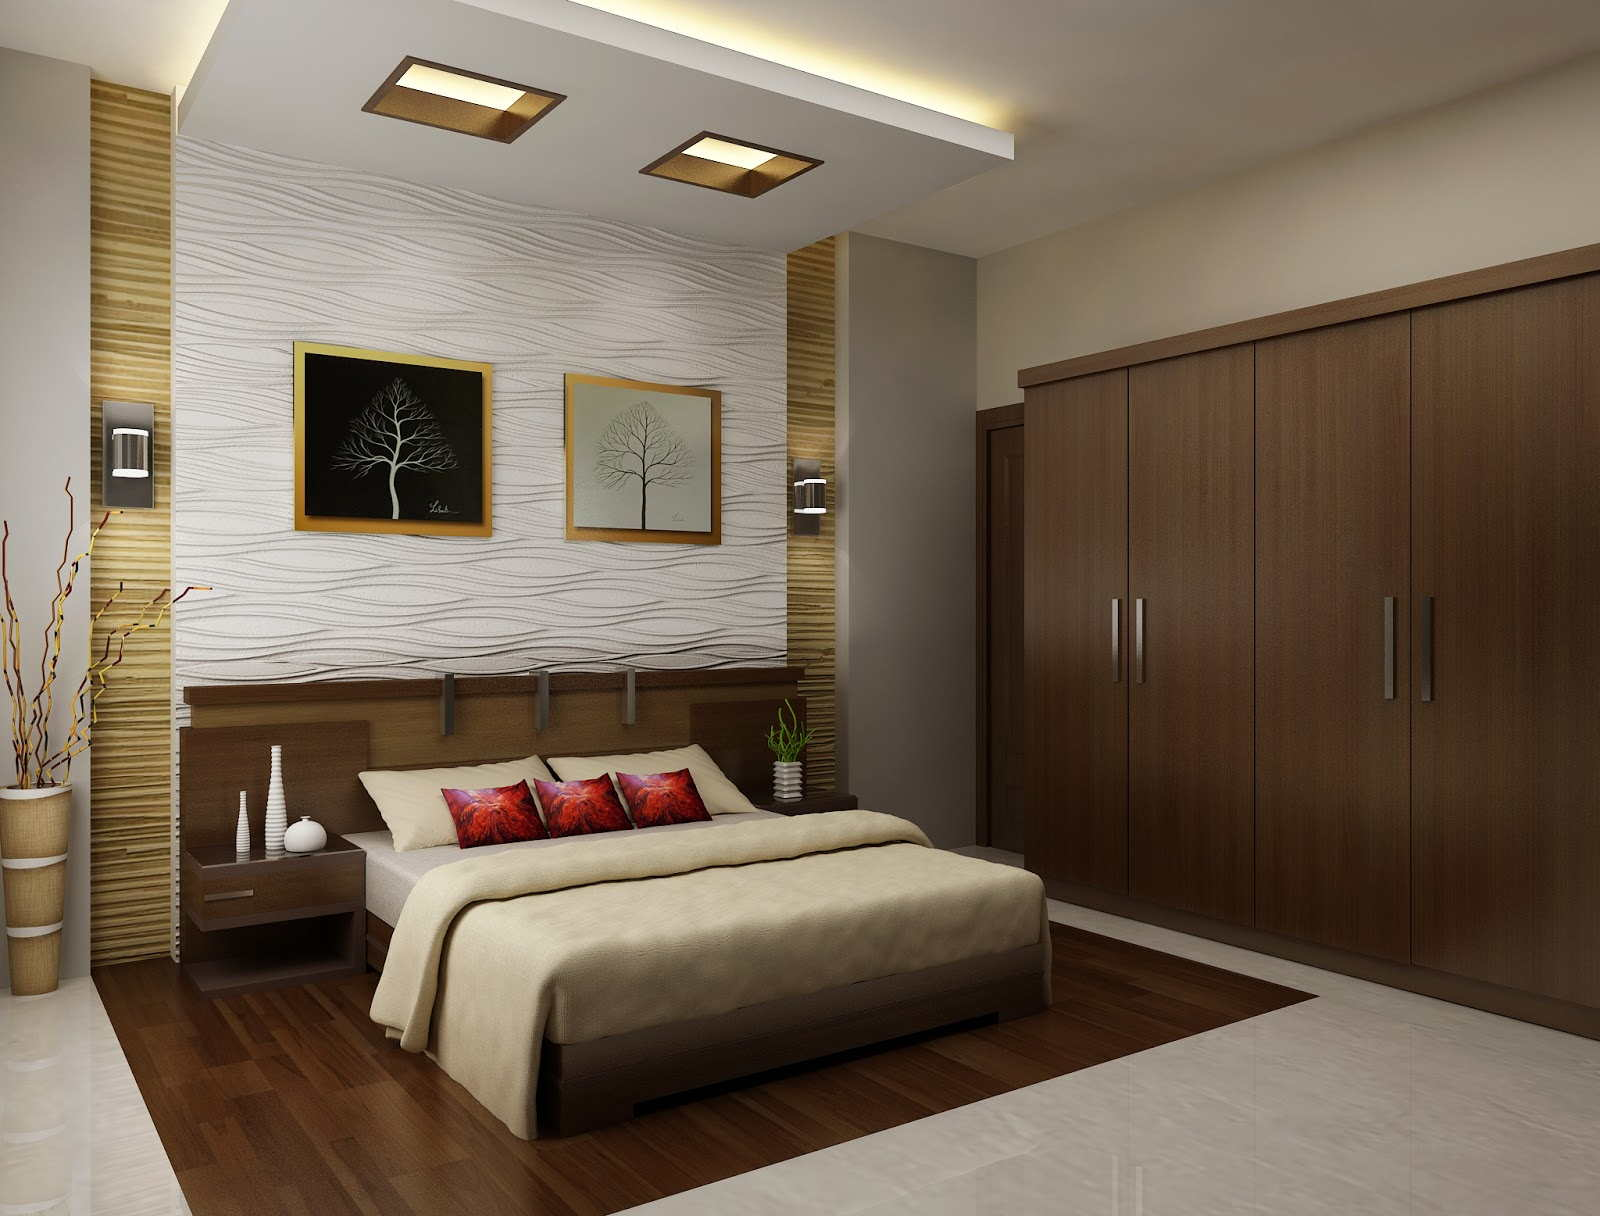 11 Attractive Bedroom Design Ideas That Will Make Your